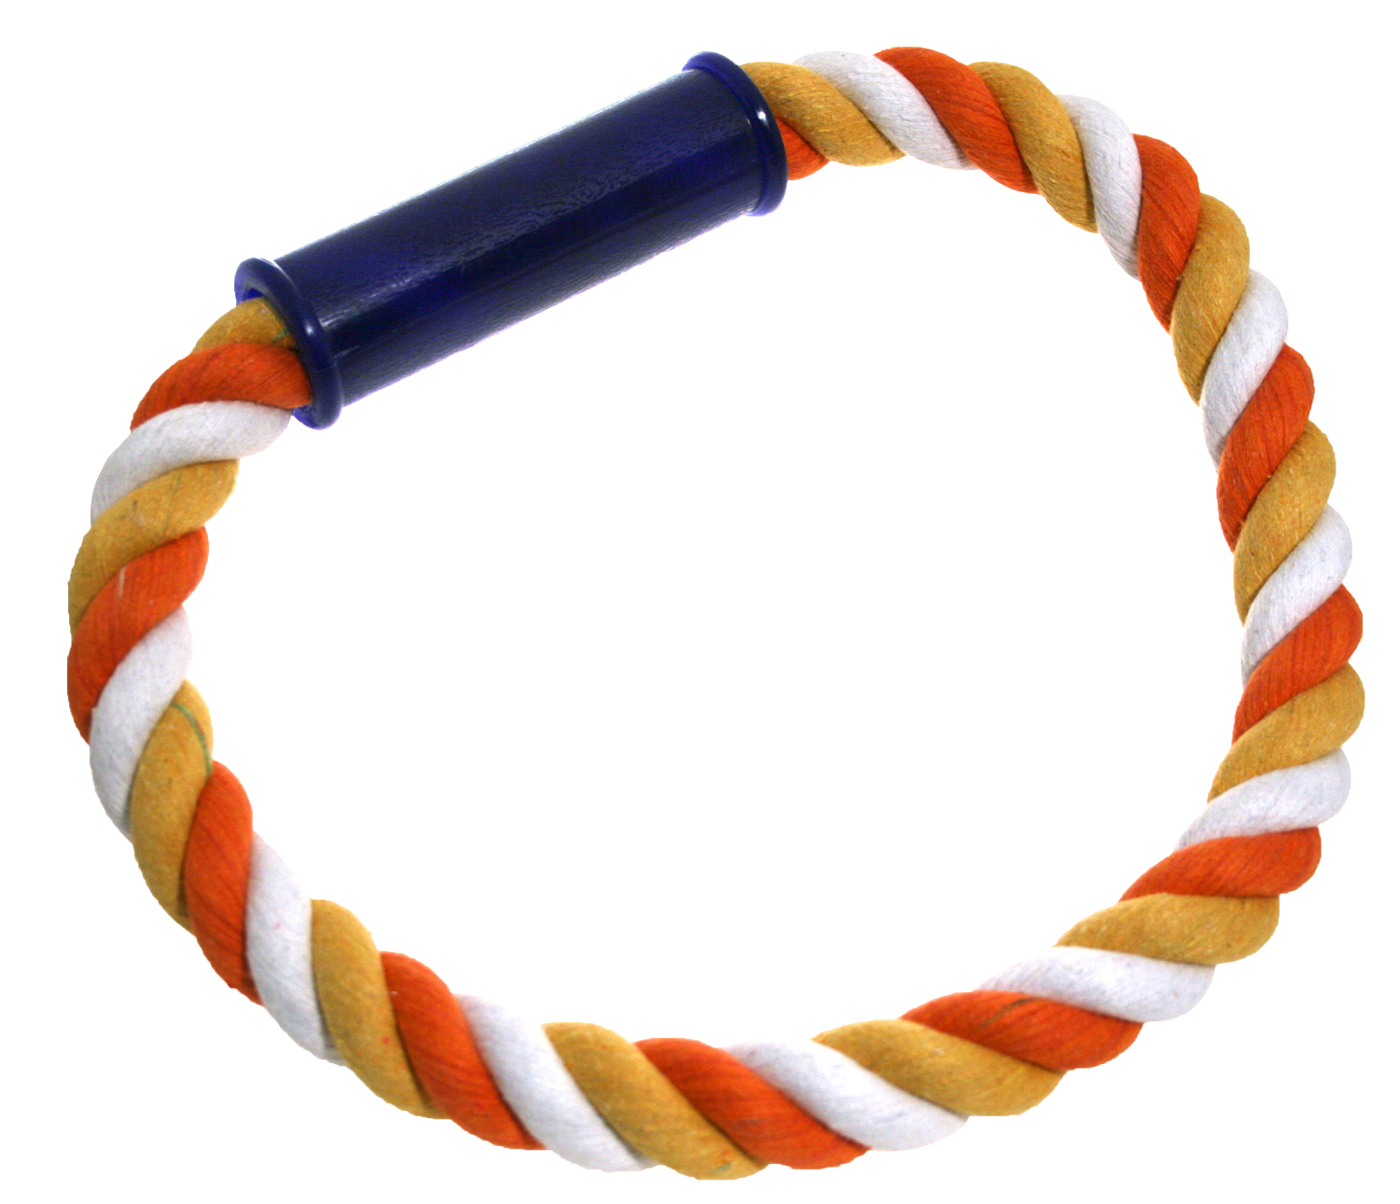 James & Steel Cotton Rope Ring Dog Toy